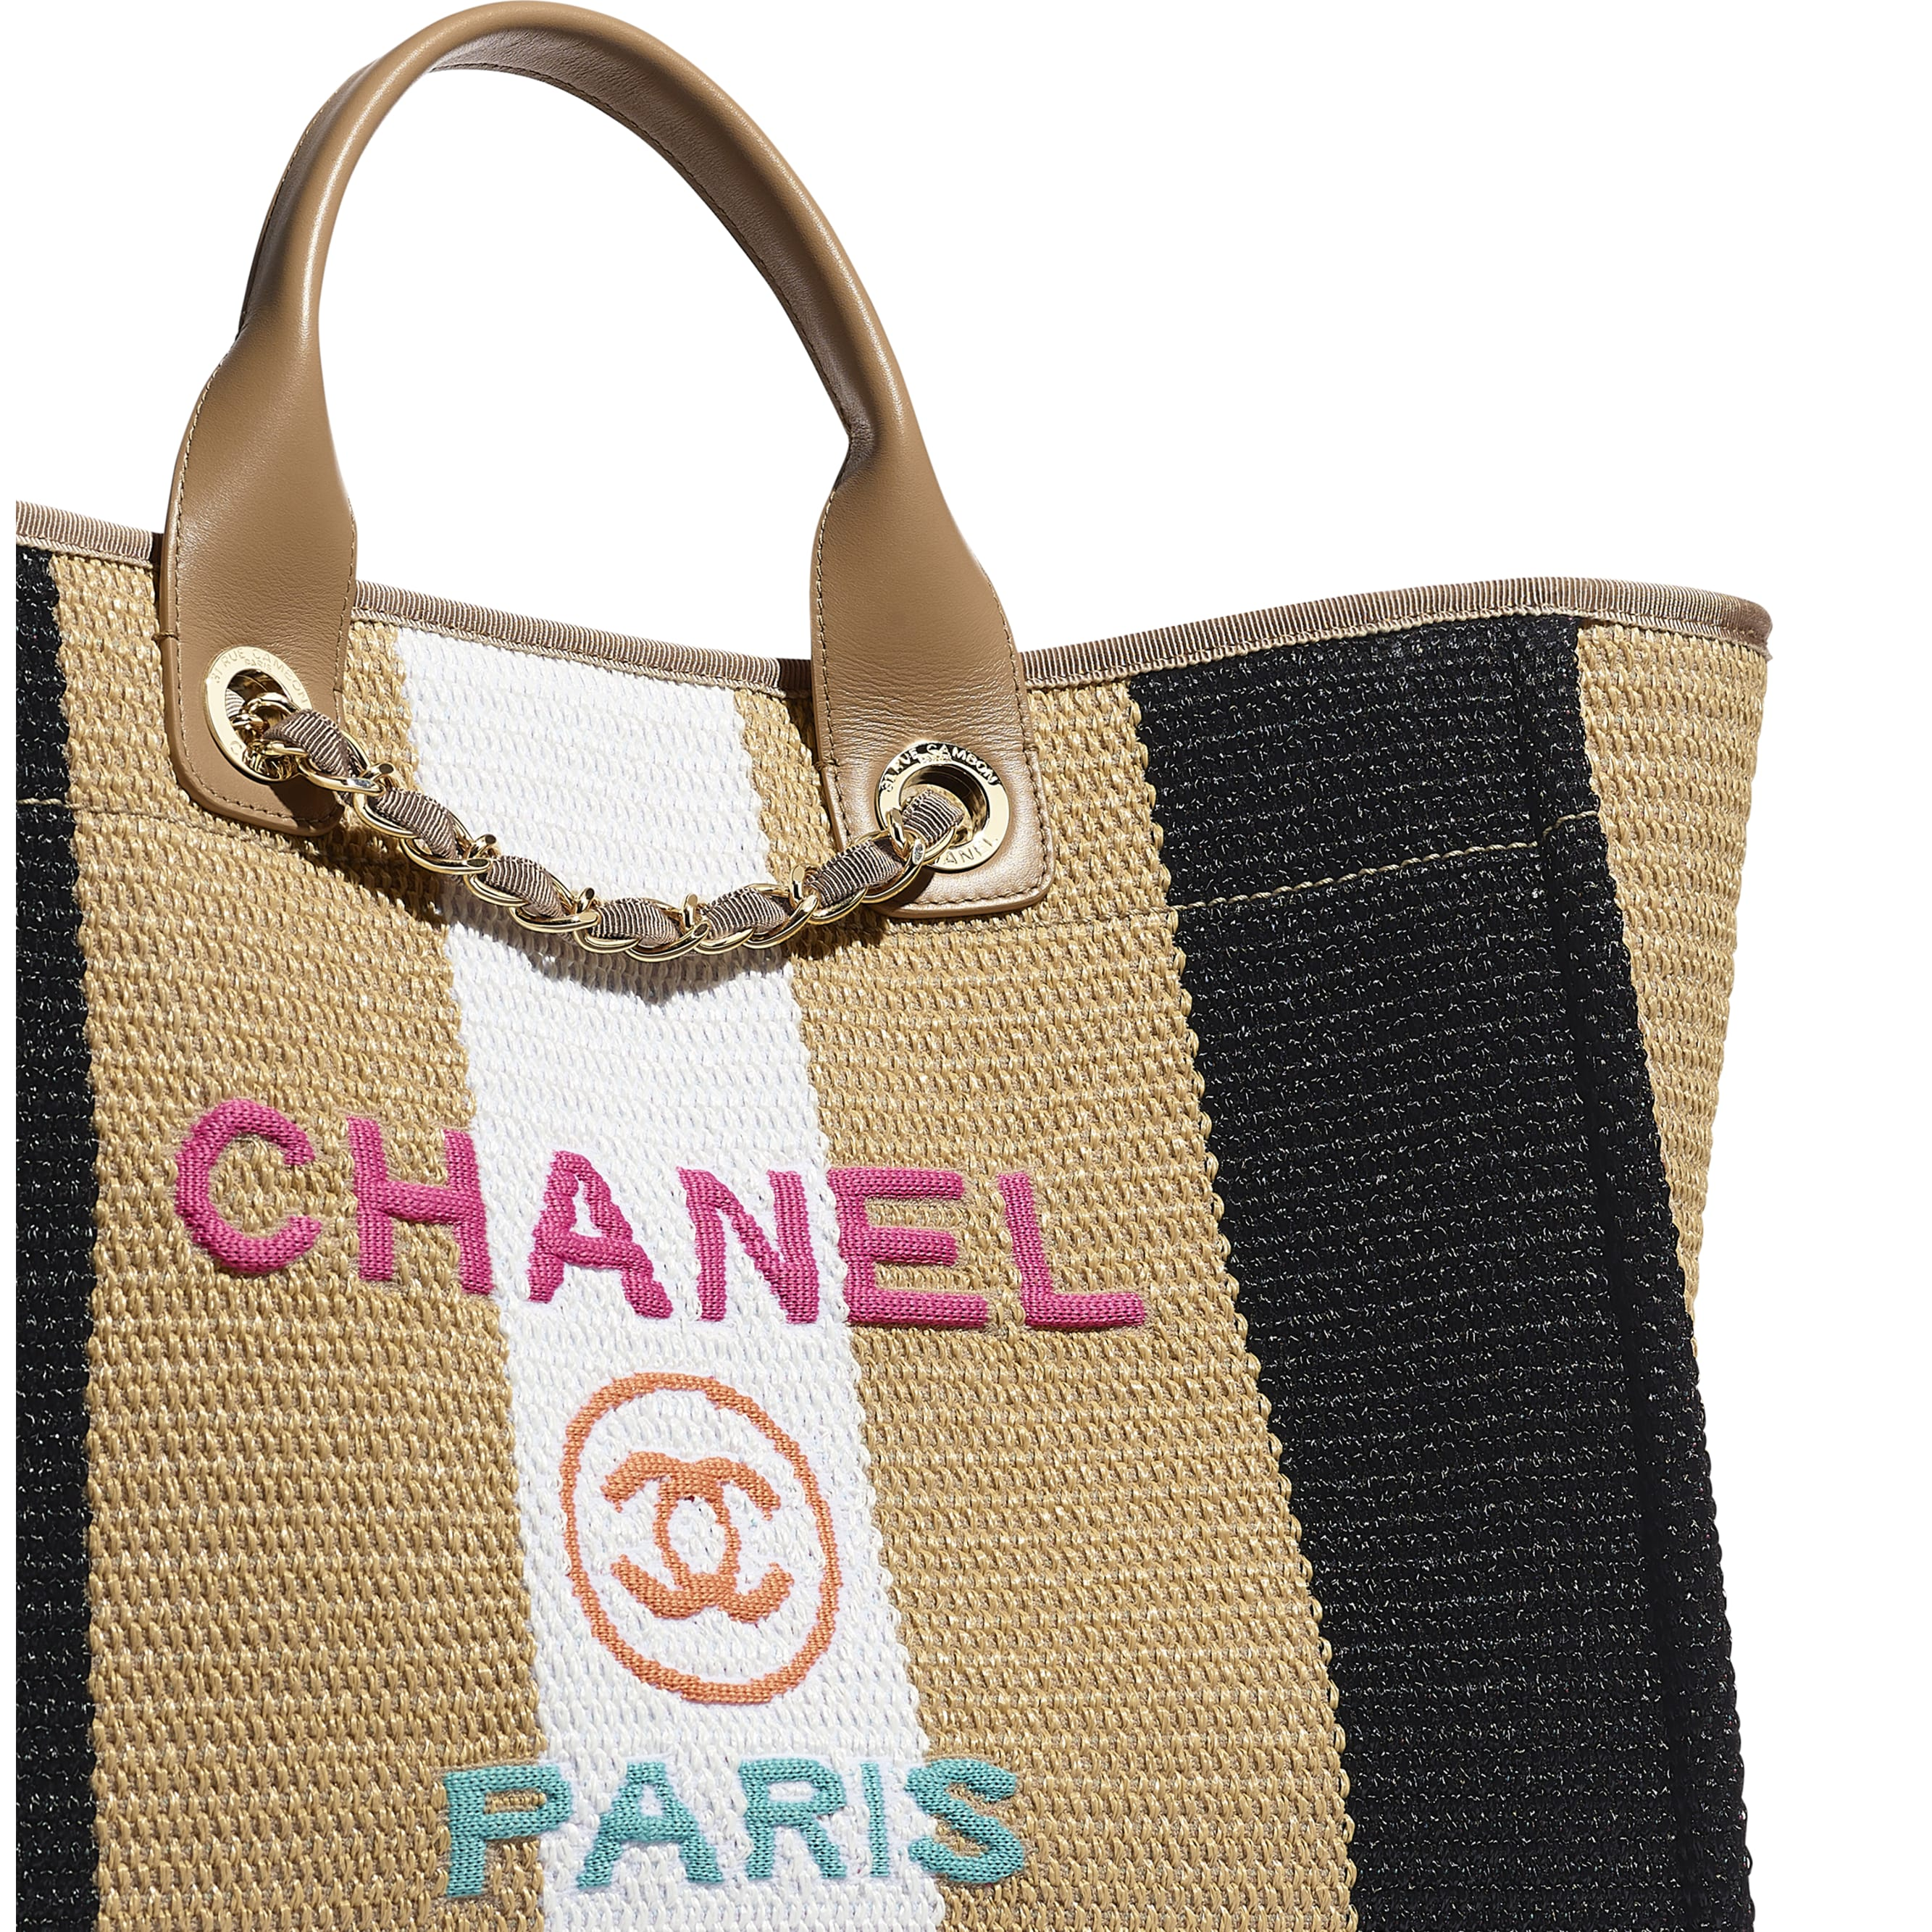 Large Tote - Beige, Black & Ivory - Viscose, Cotton, Calfskin & Gold-Tone Metal - CHANEL - Extra view - see standard sized version